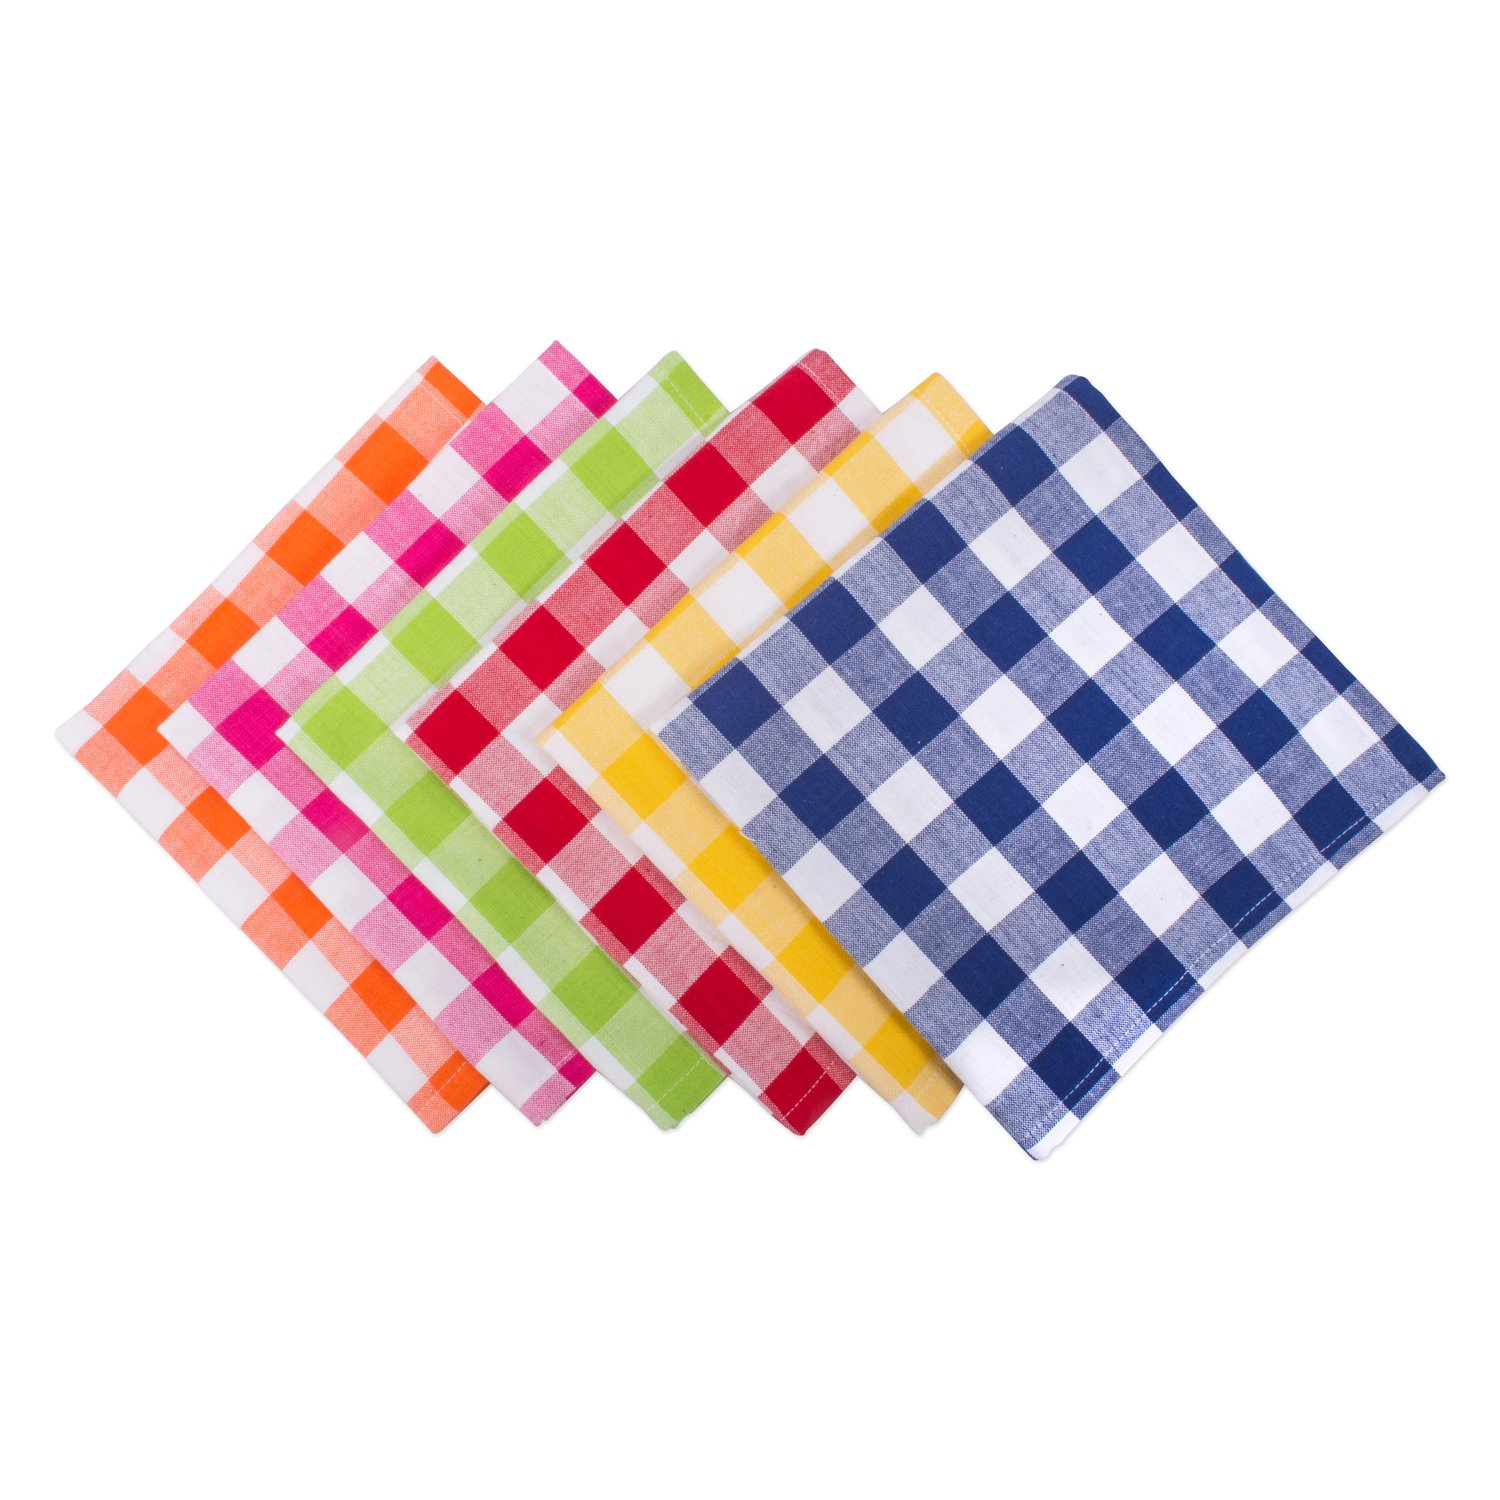 DII 100% Cotton, Basic Everyday 18x18'' Buffet Napkin, Set of 6, Assorted Checkers by DII